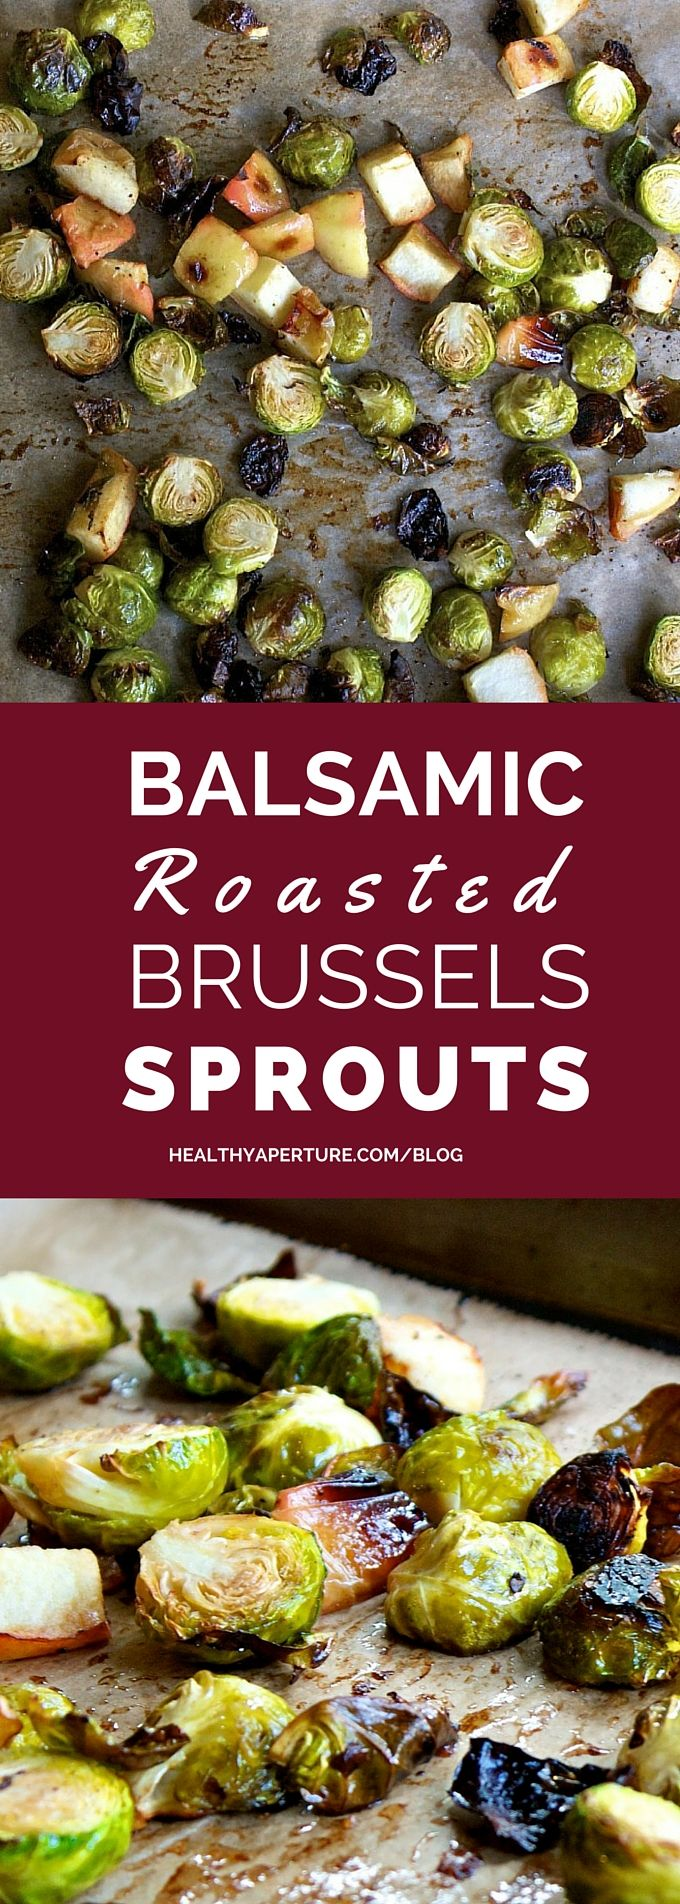 Balsamic Roasted Brussels Sprouts And Apples Healthy Aperture Recipe Vegetarian Recipes Healthy Vegetarian Side Dishes Healthy Lunch Meal Prep